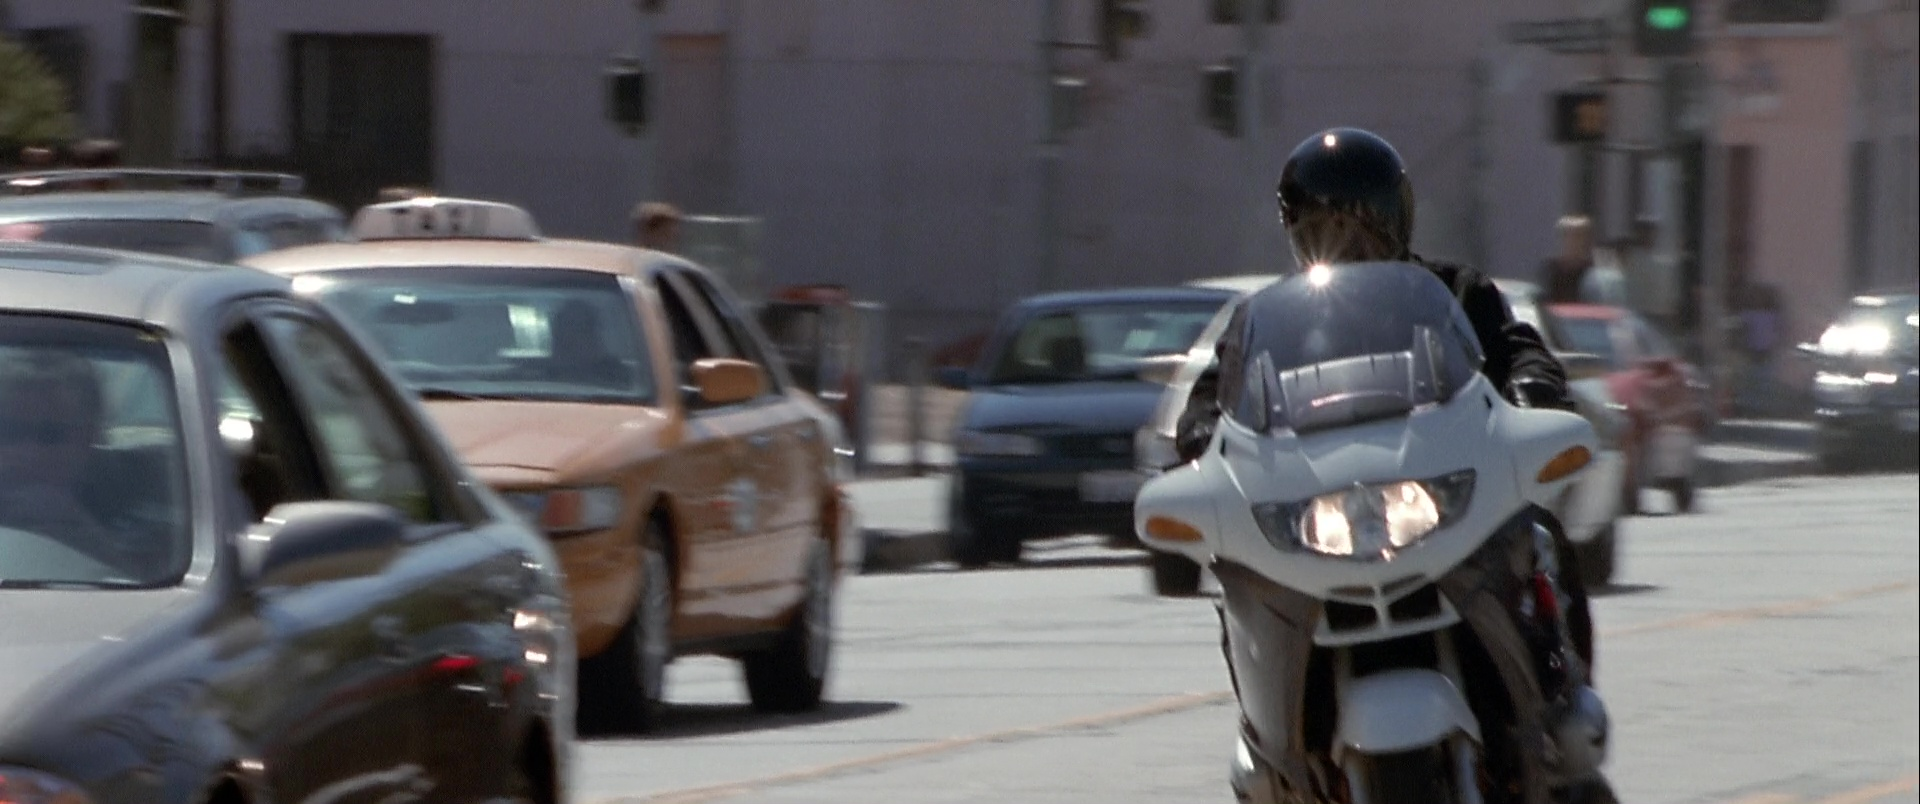 Bmw R1150rt Motorcycles In The Italian Job 2003 Movie